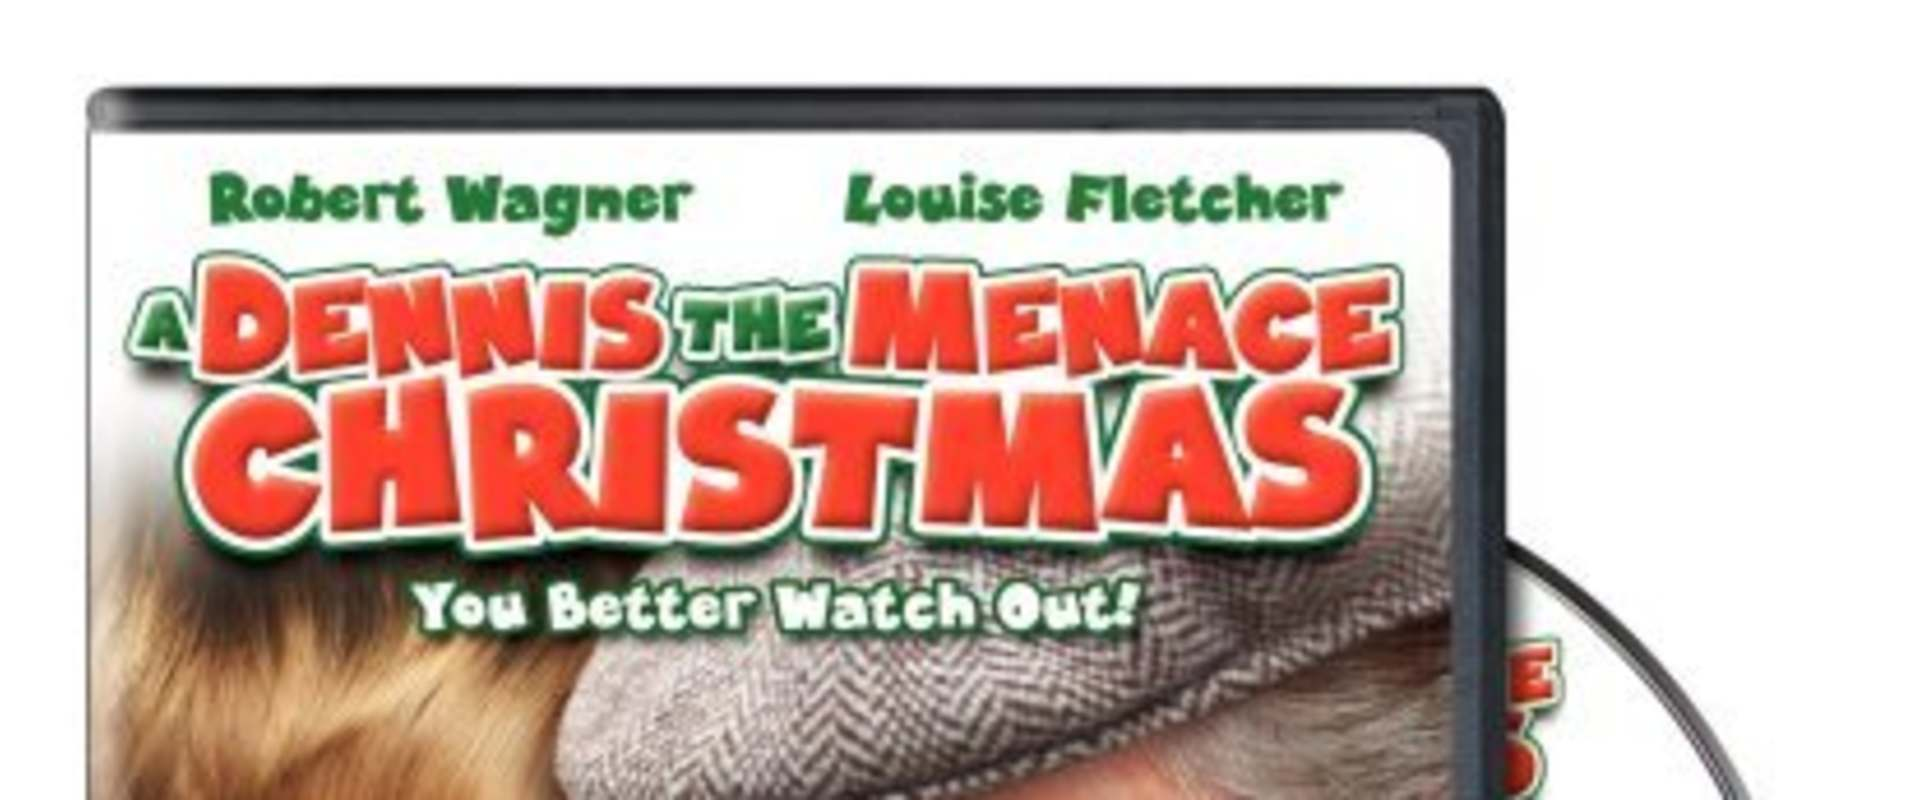 A Dennis the Menace Christmas background 2